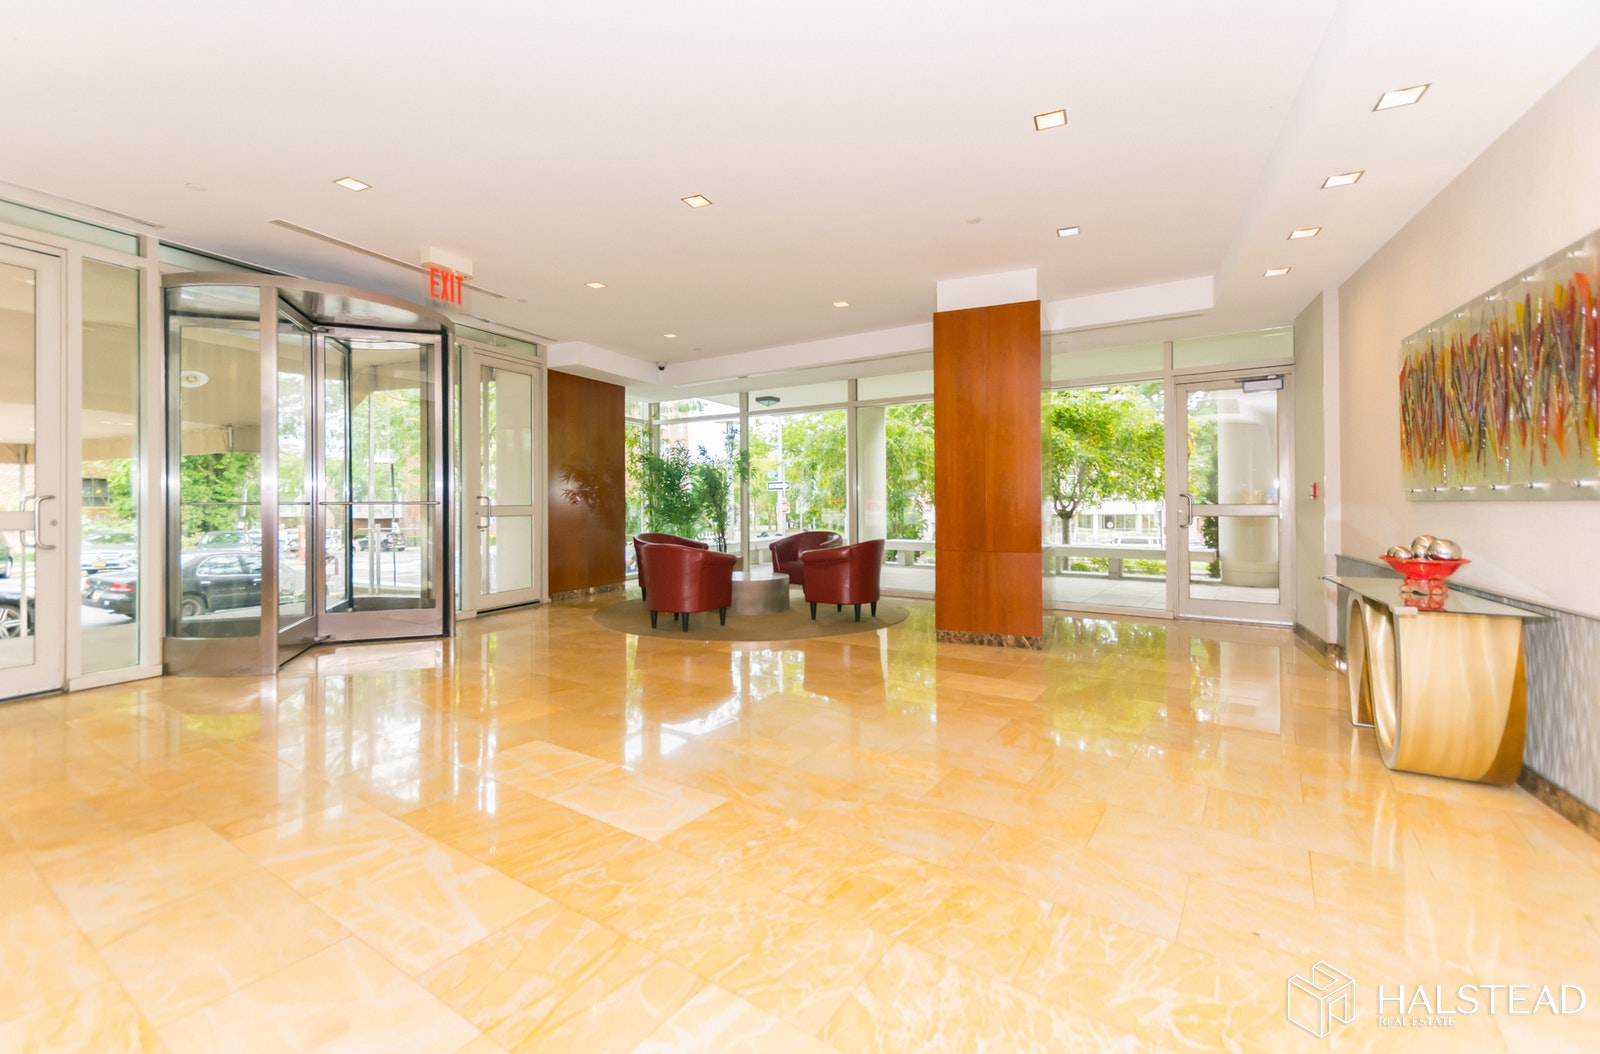 640 West 237th Street 10a, Riverdale, New York, 10463, $1,085,000, Property For Sale, Halstead Real Estate, Photo 19